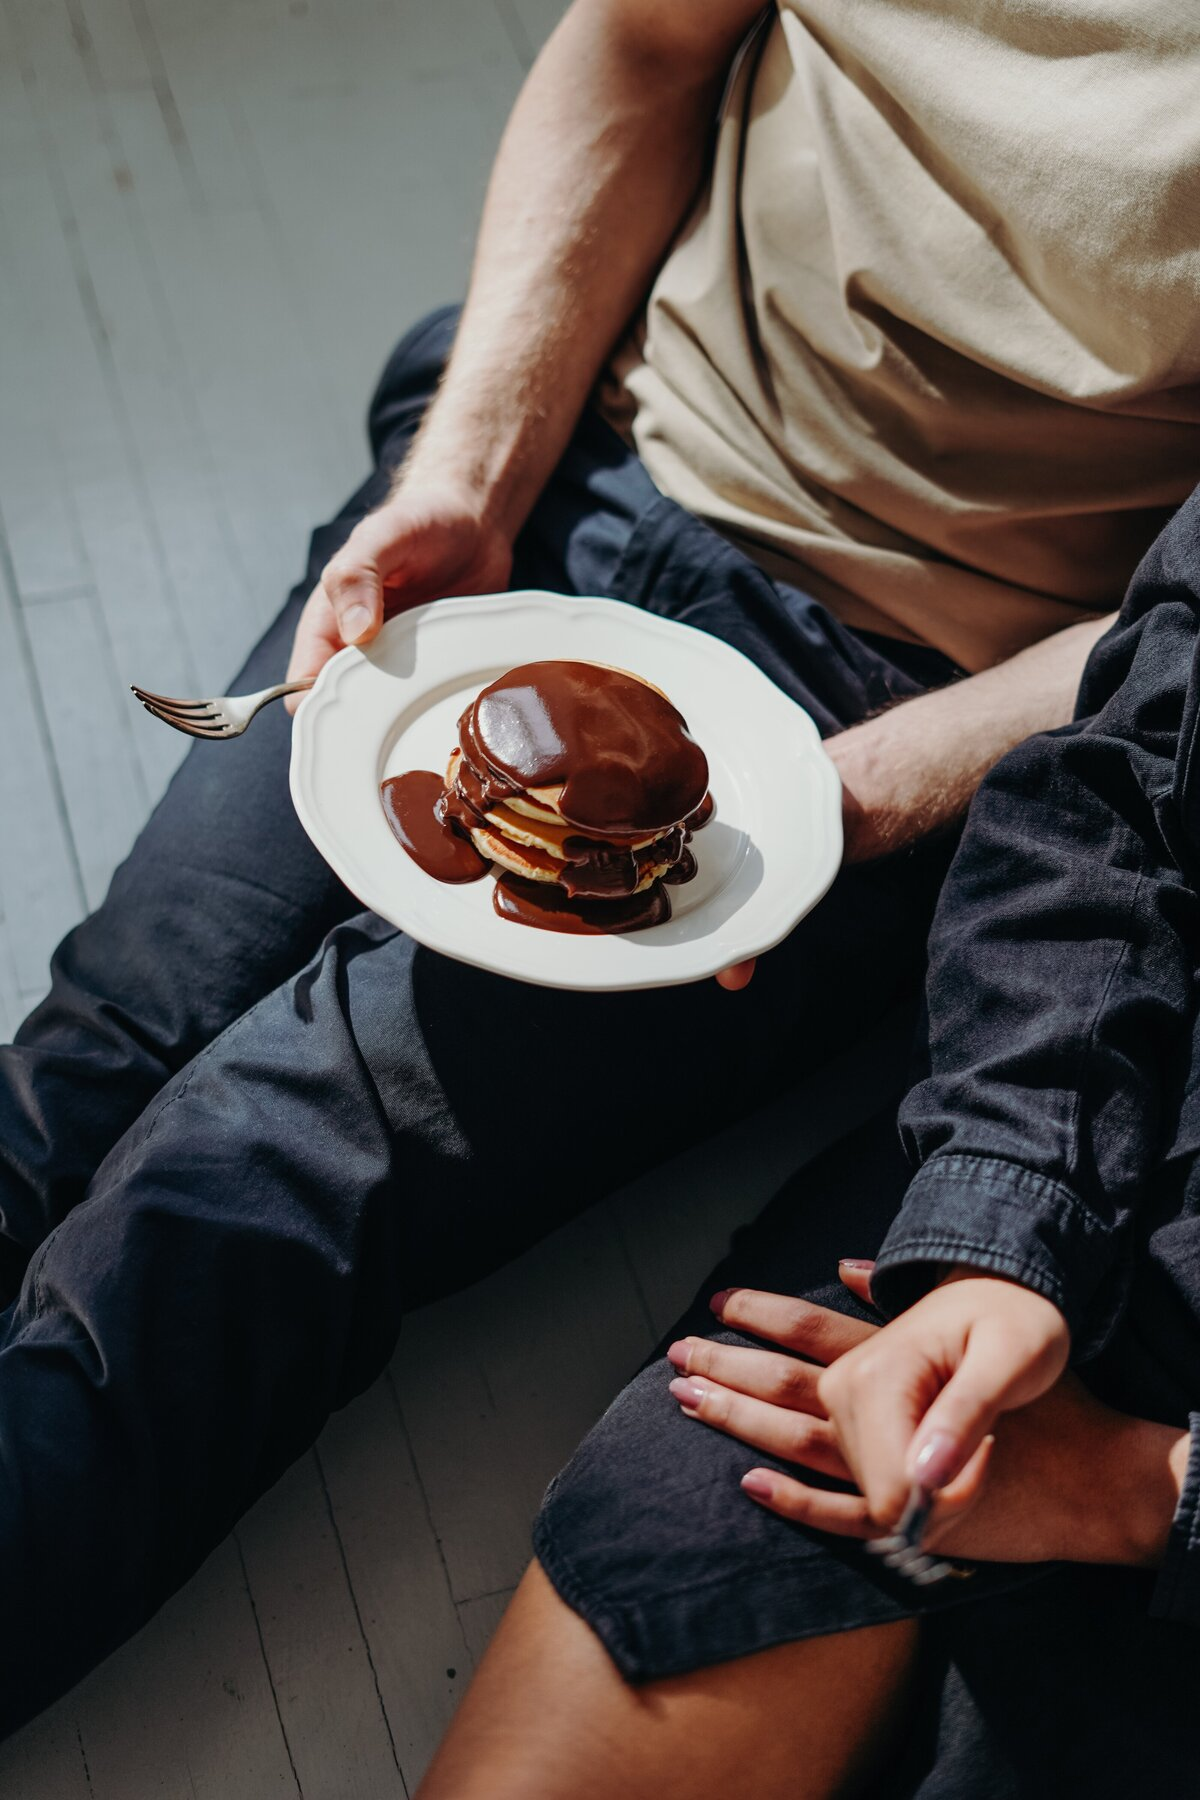 person-holding-plate-with-chocolate-pancakes-3692871